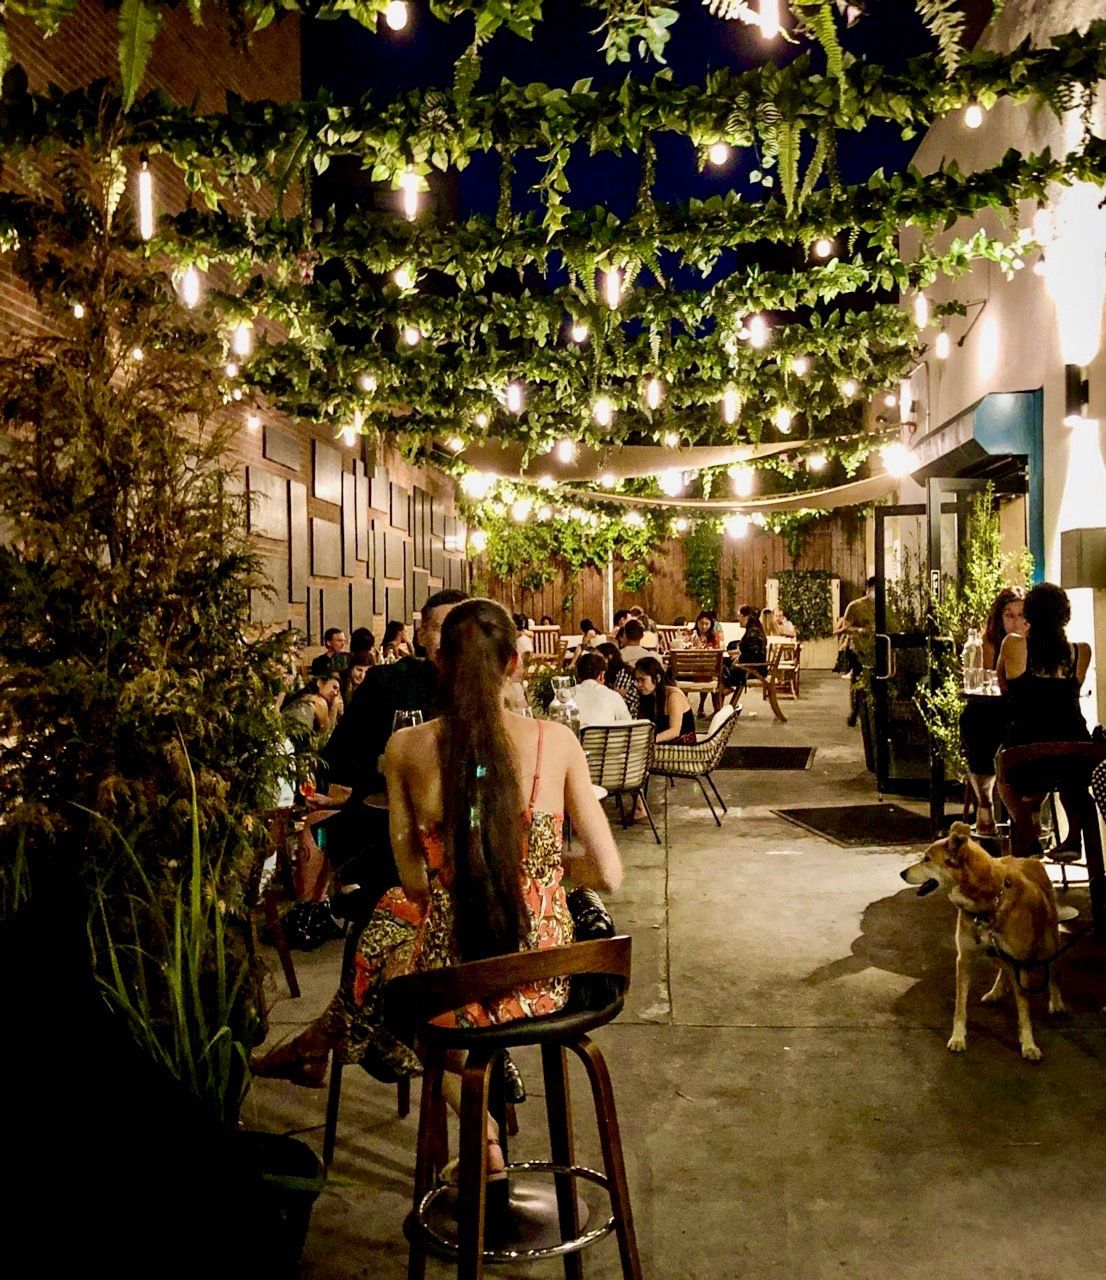 People sit at tables and chairs underneath greenery and string lights decorating an outdoor garden and dining area